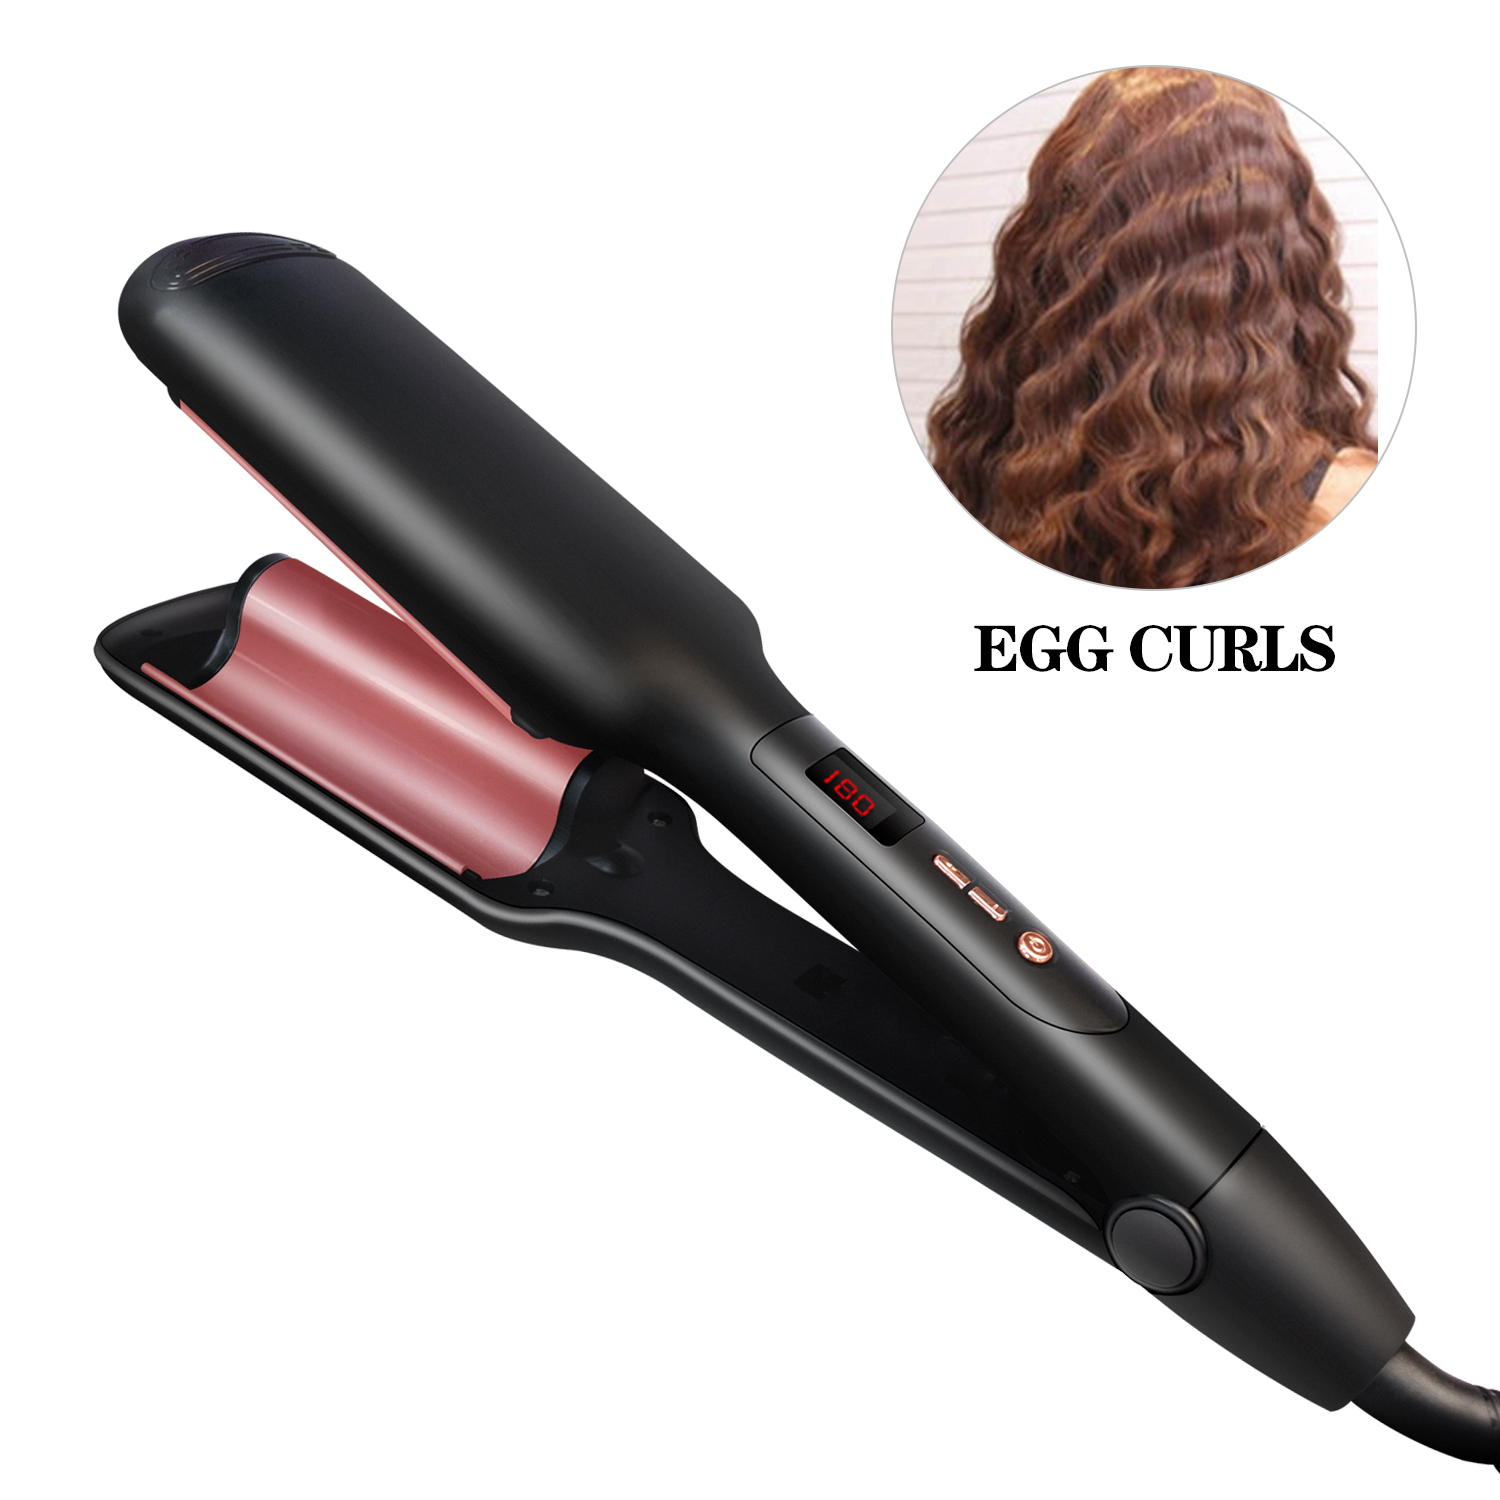 Curling Tongs Wand Deep Waver For Beachy Waves Professional Curling Iron Tourmaline Deep Waver Styling Tools Hair Curlers